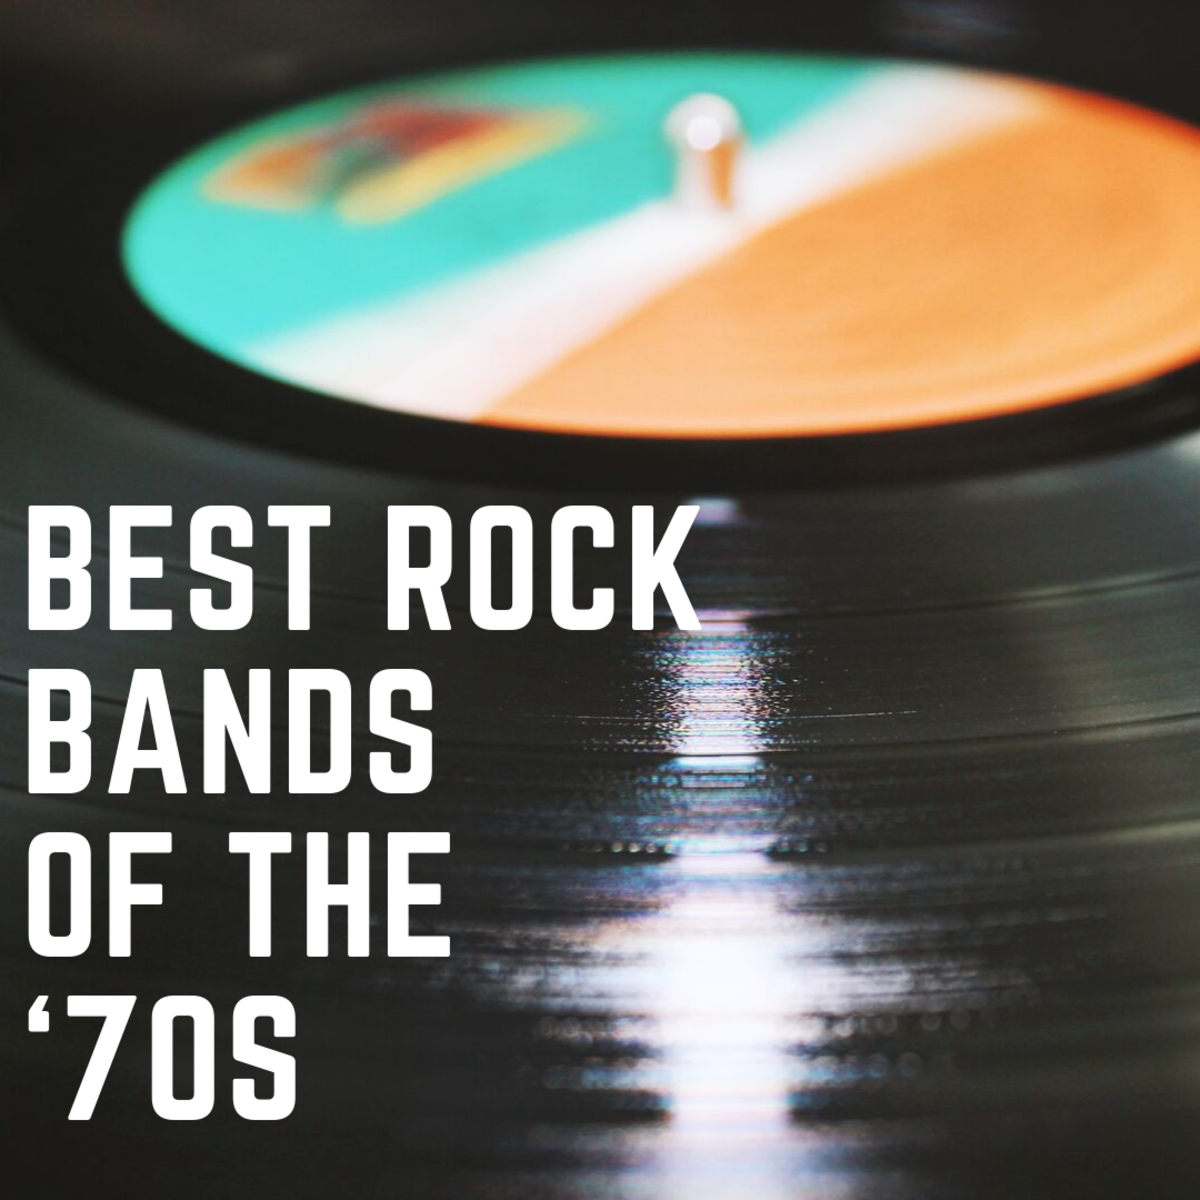 Explore the best rock bands of the 1970s in this comprehensive list!